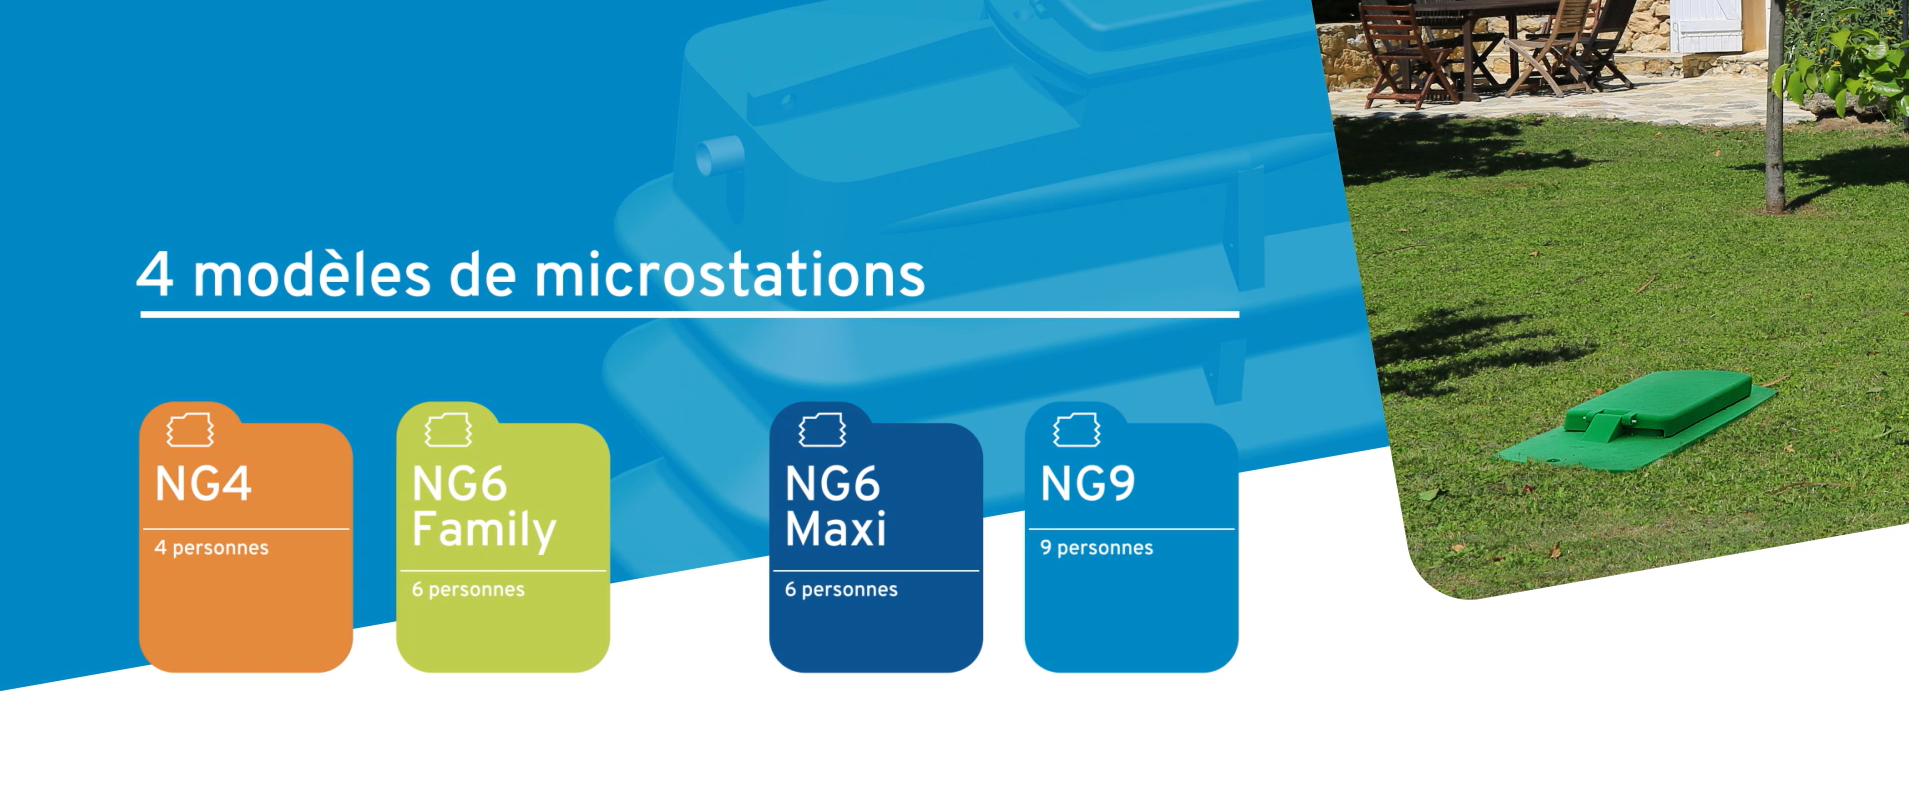 4-modeles-microstations-innoclair